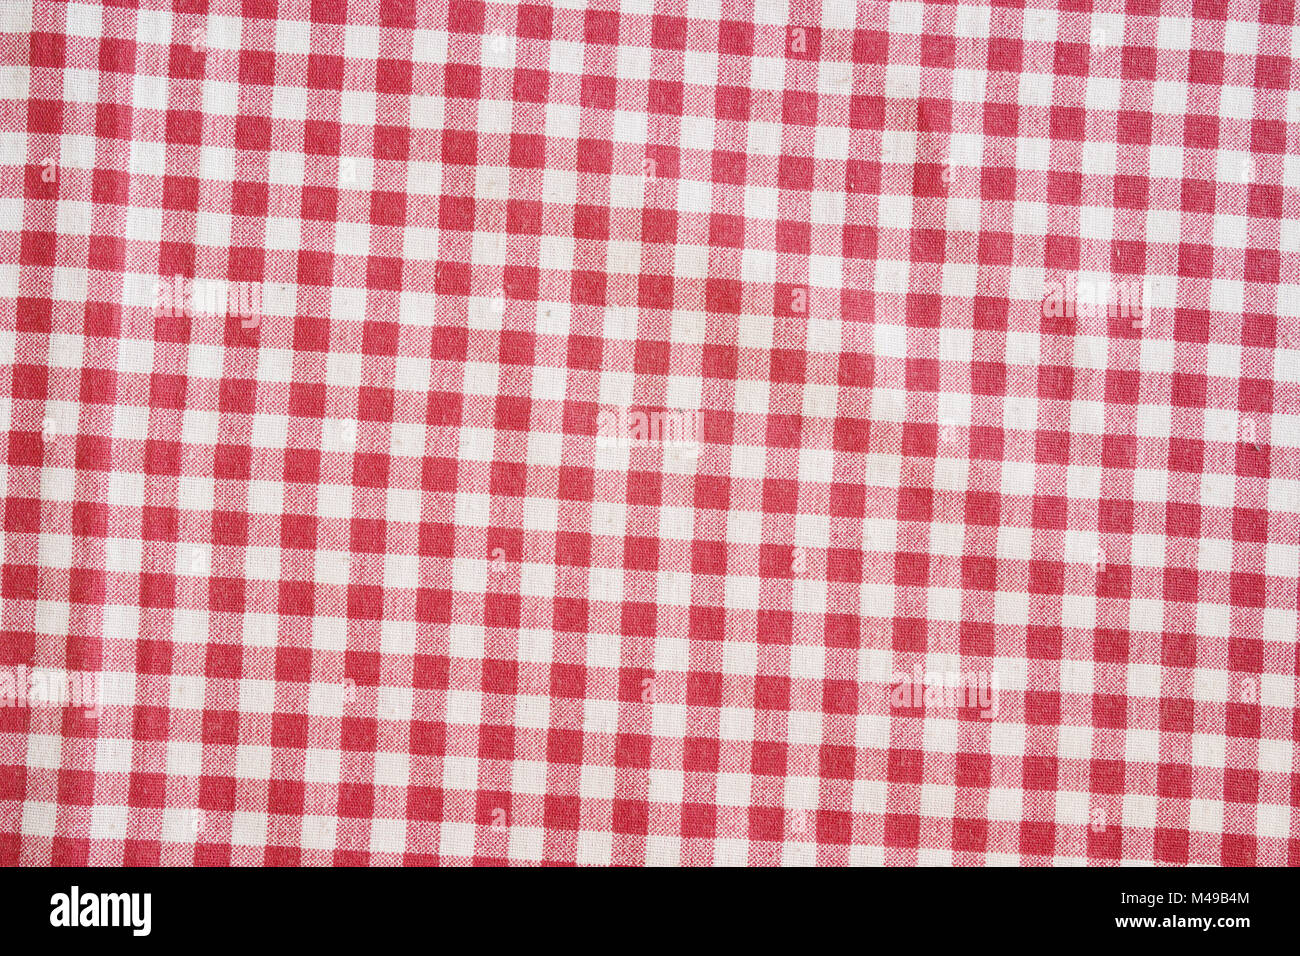 Charmant Red Picnic Tablecloth Background. Red And White Checkered Fabric Texture.